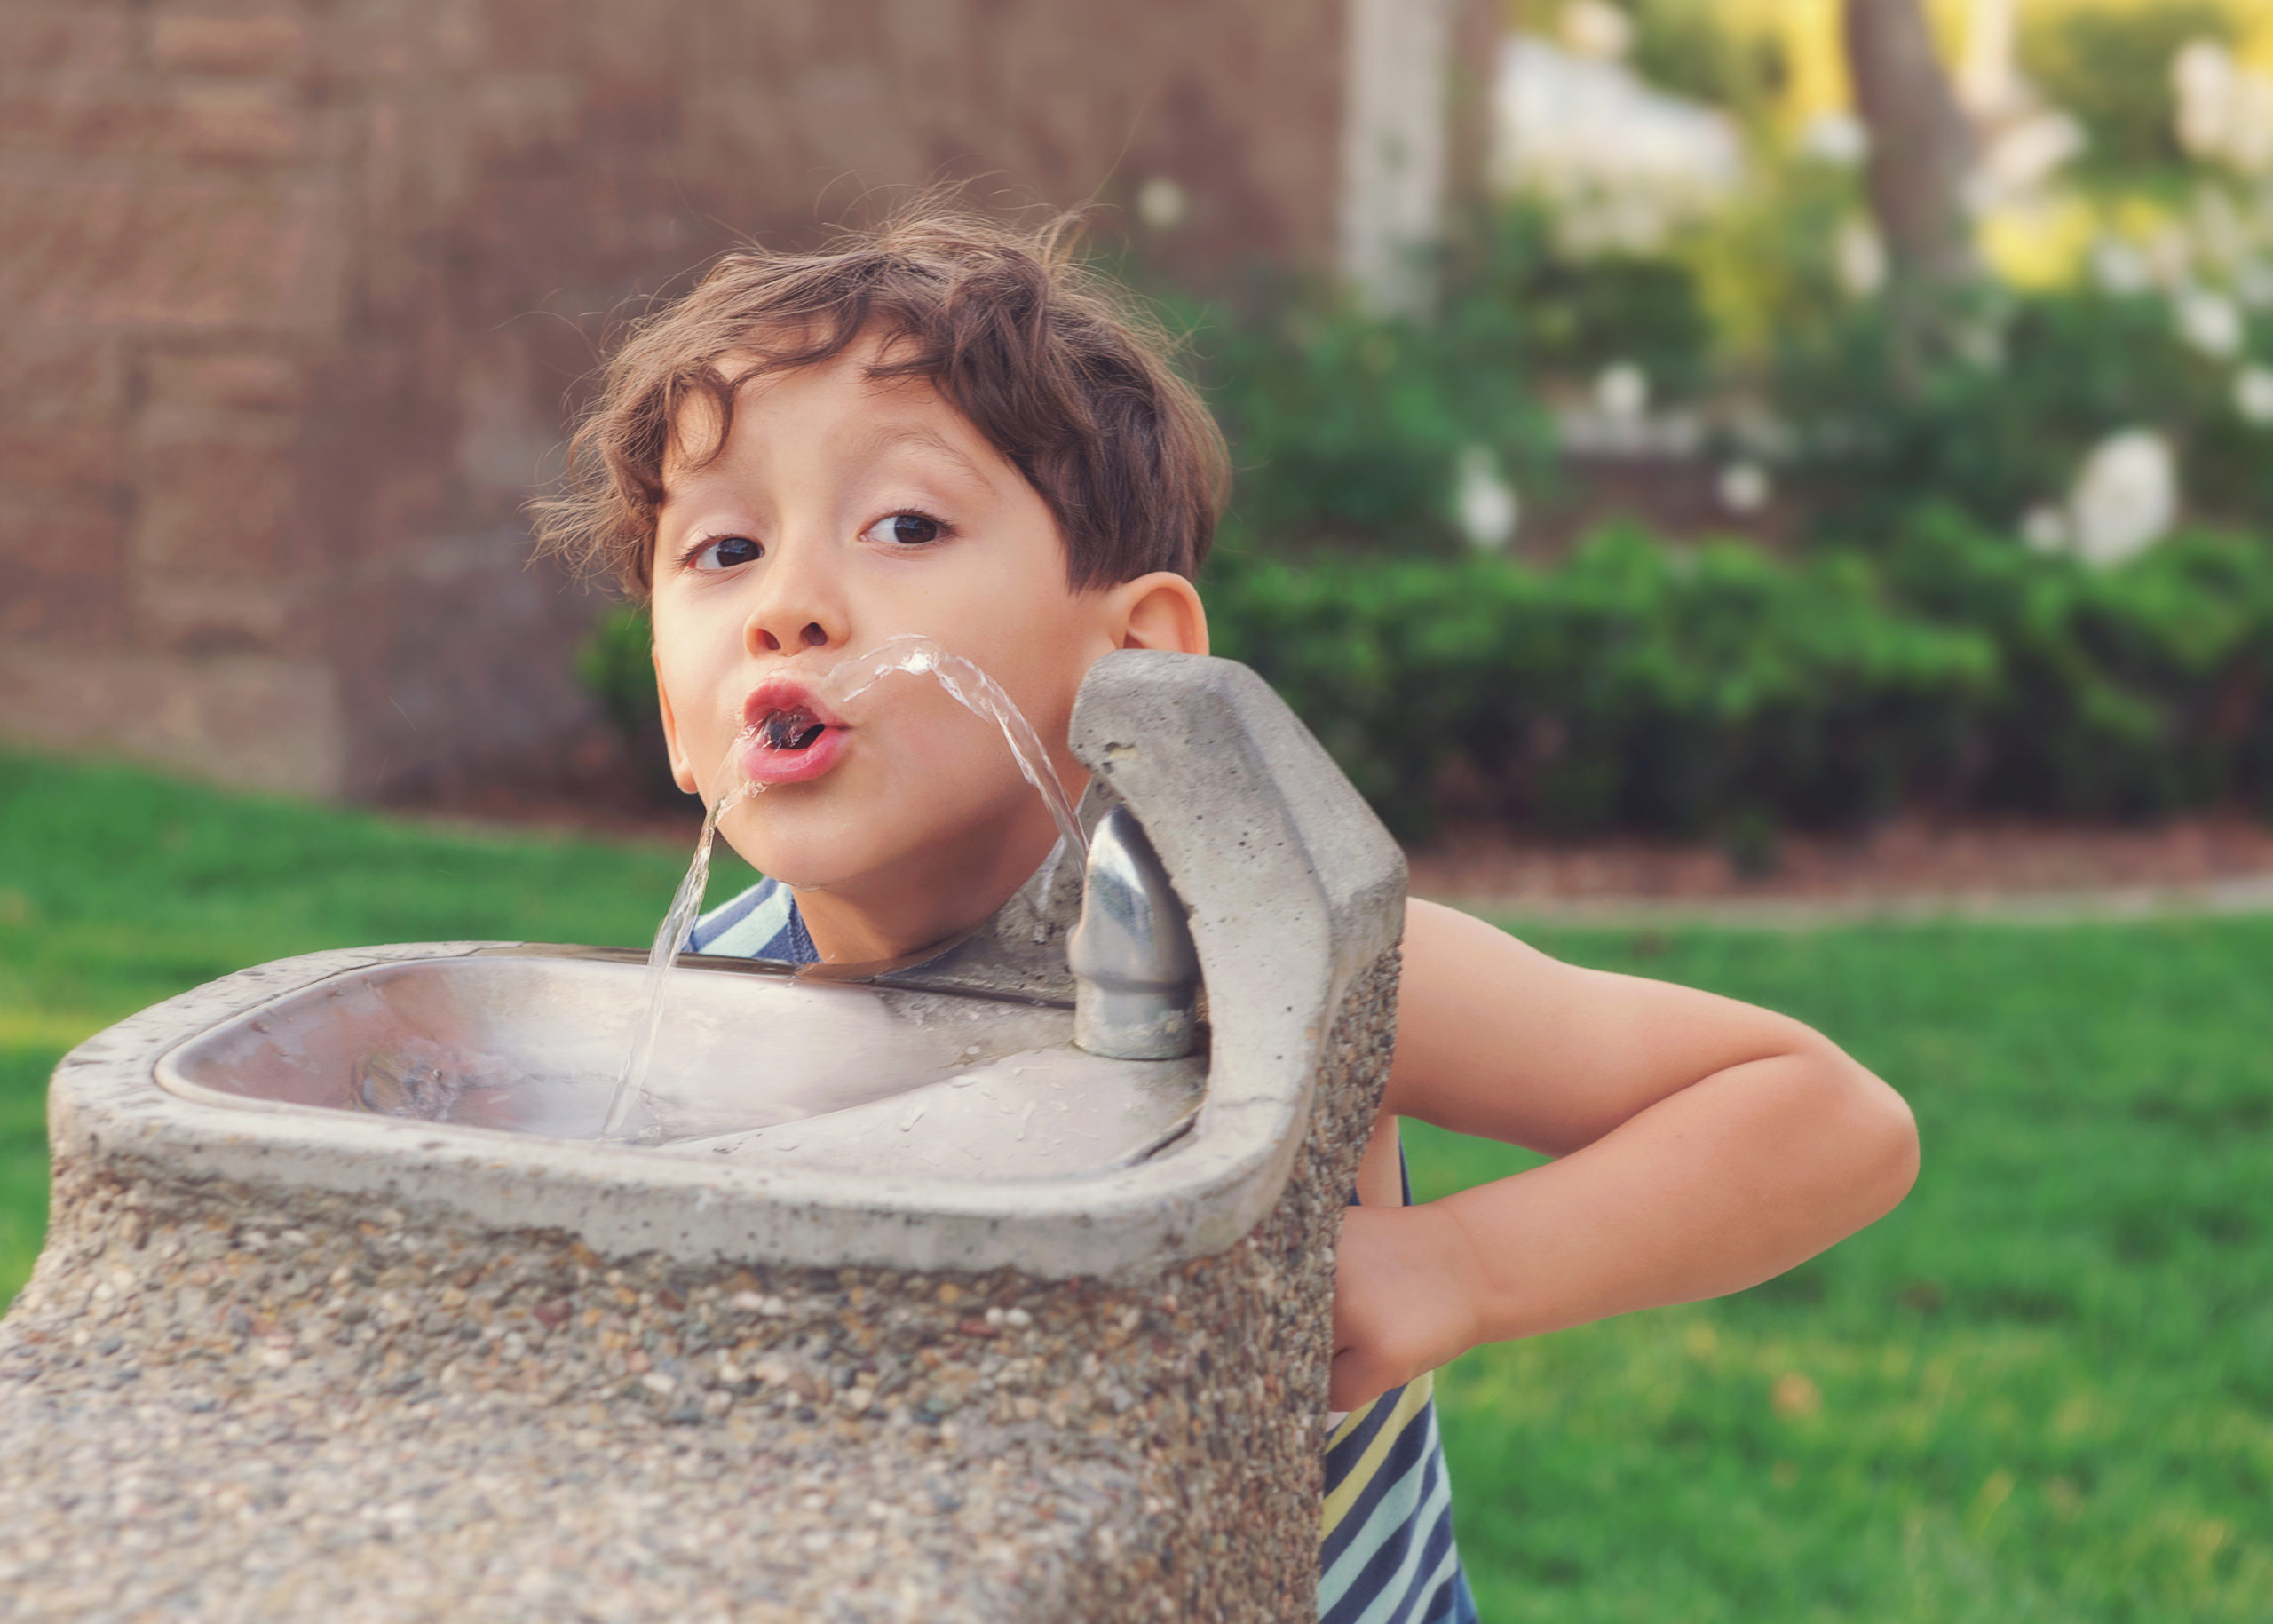 Image of a young boy drinking from a public drinking founain.